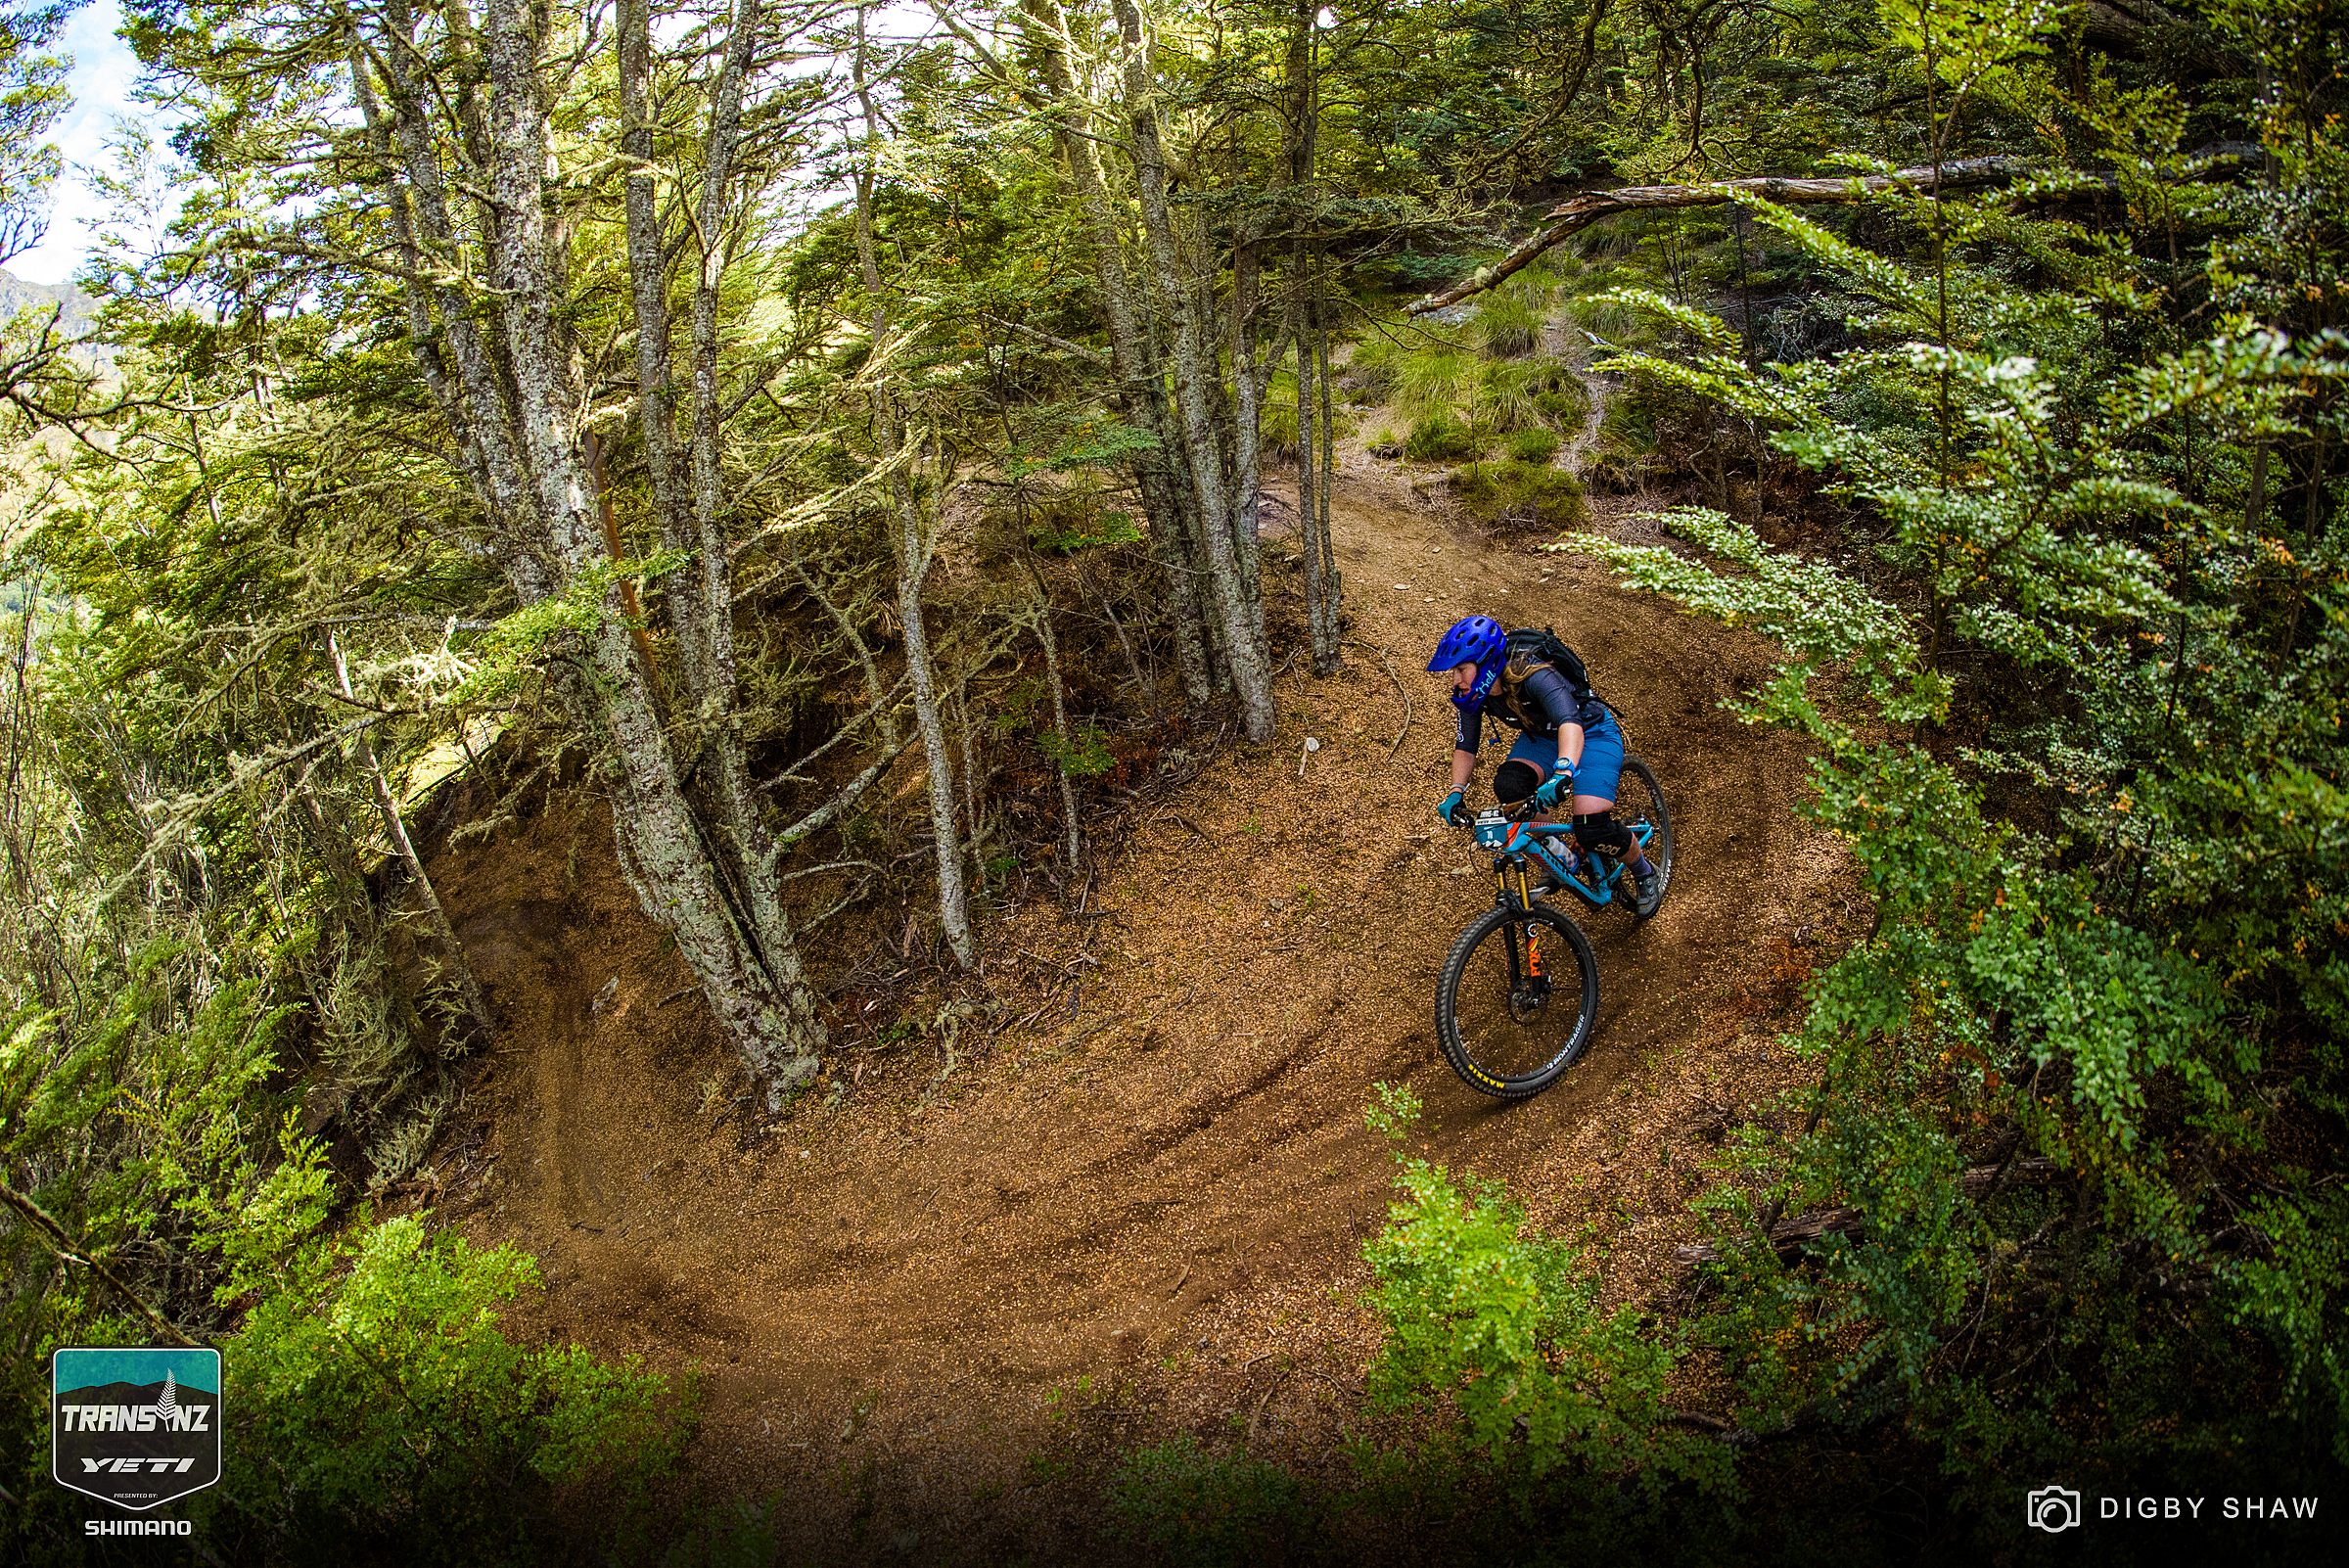 More stage two loamy goodness